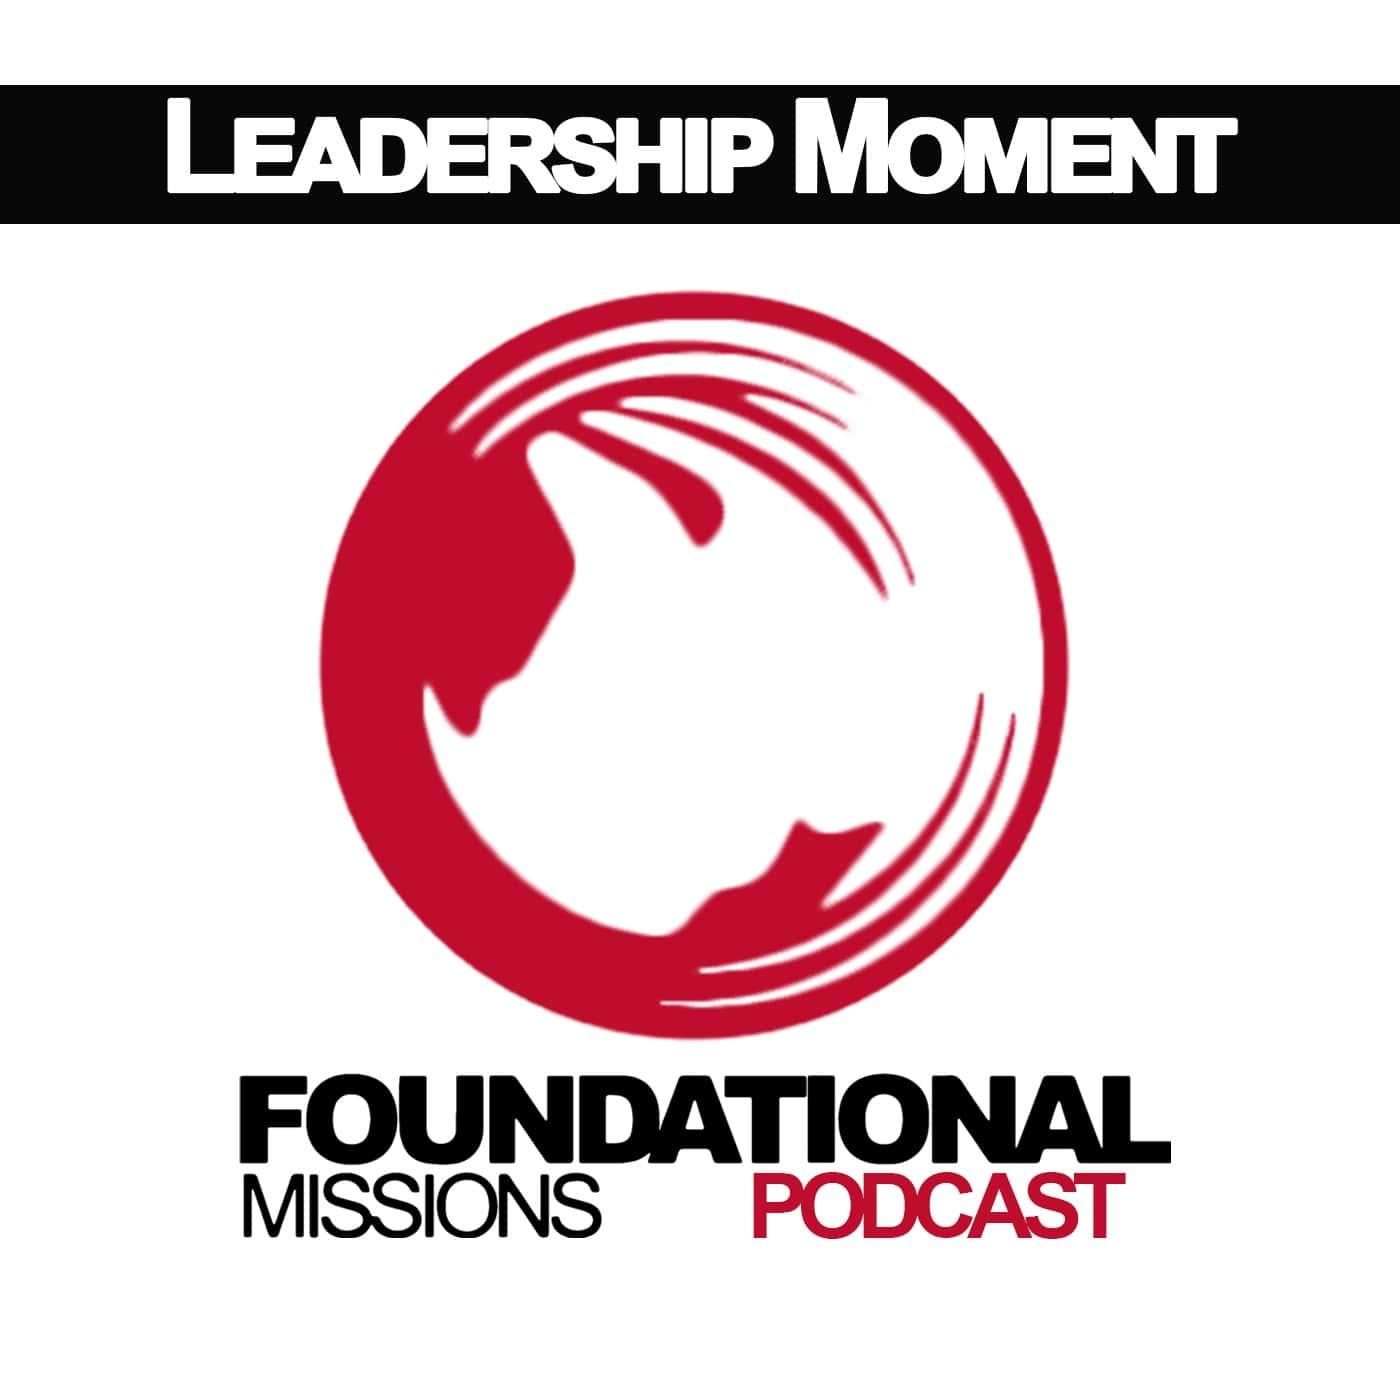 Artwork for On Location In Thailand - Samara Murtaugh On Single Women Leaders - Foundational Missions Leadership Moment  # 72